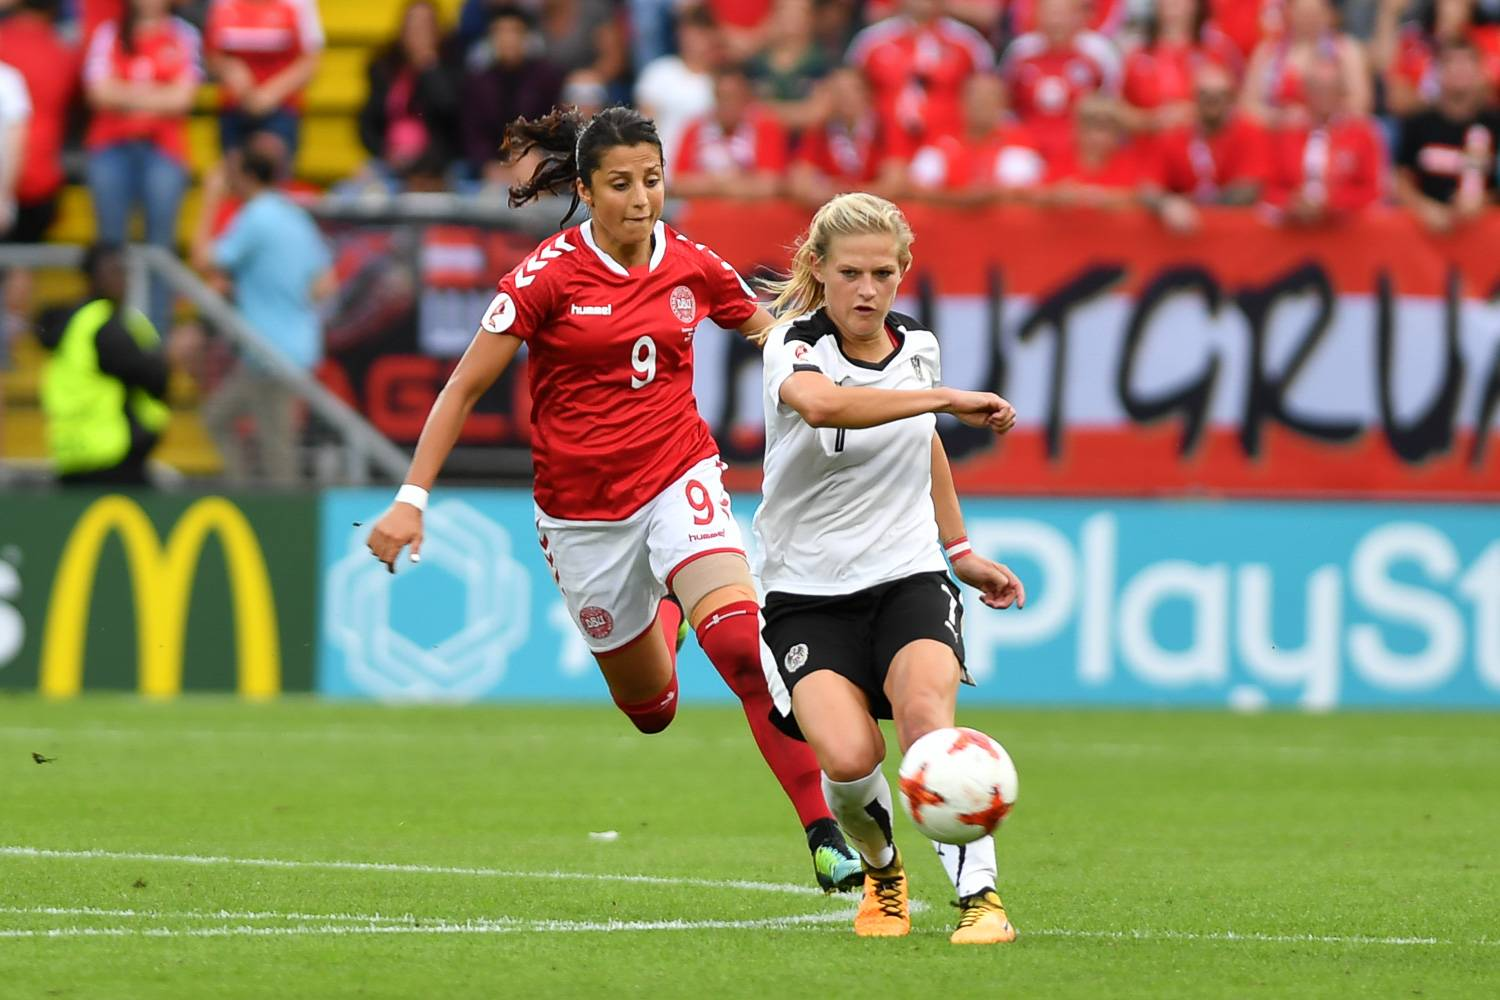 Image of two women's soccer players from Denmark and Austria playing a match.